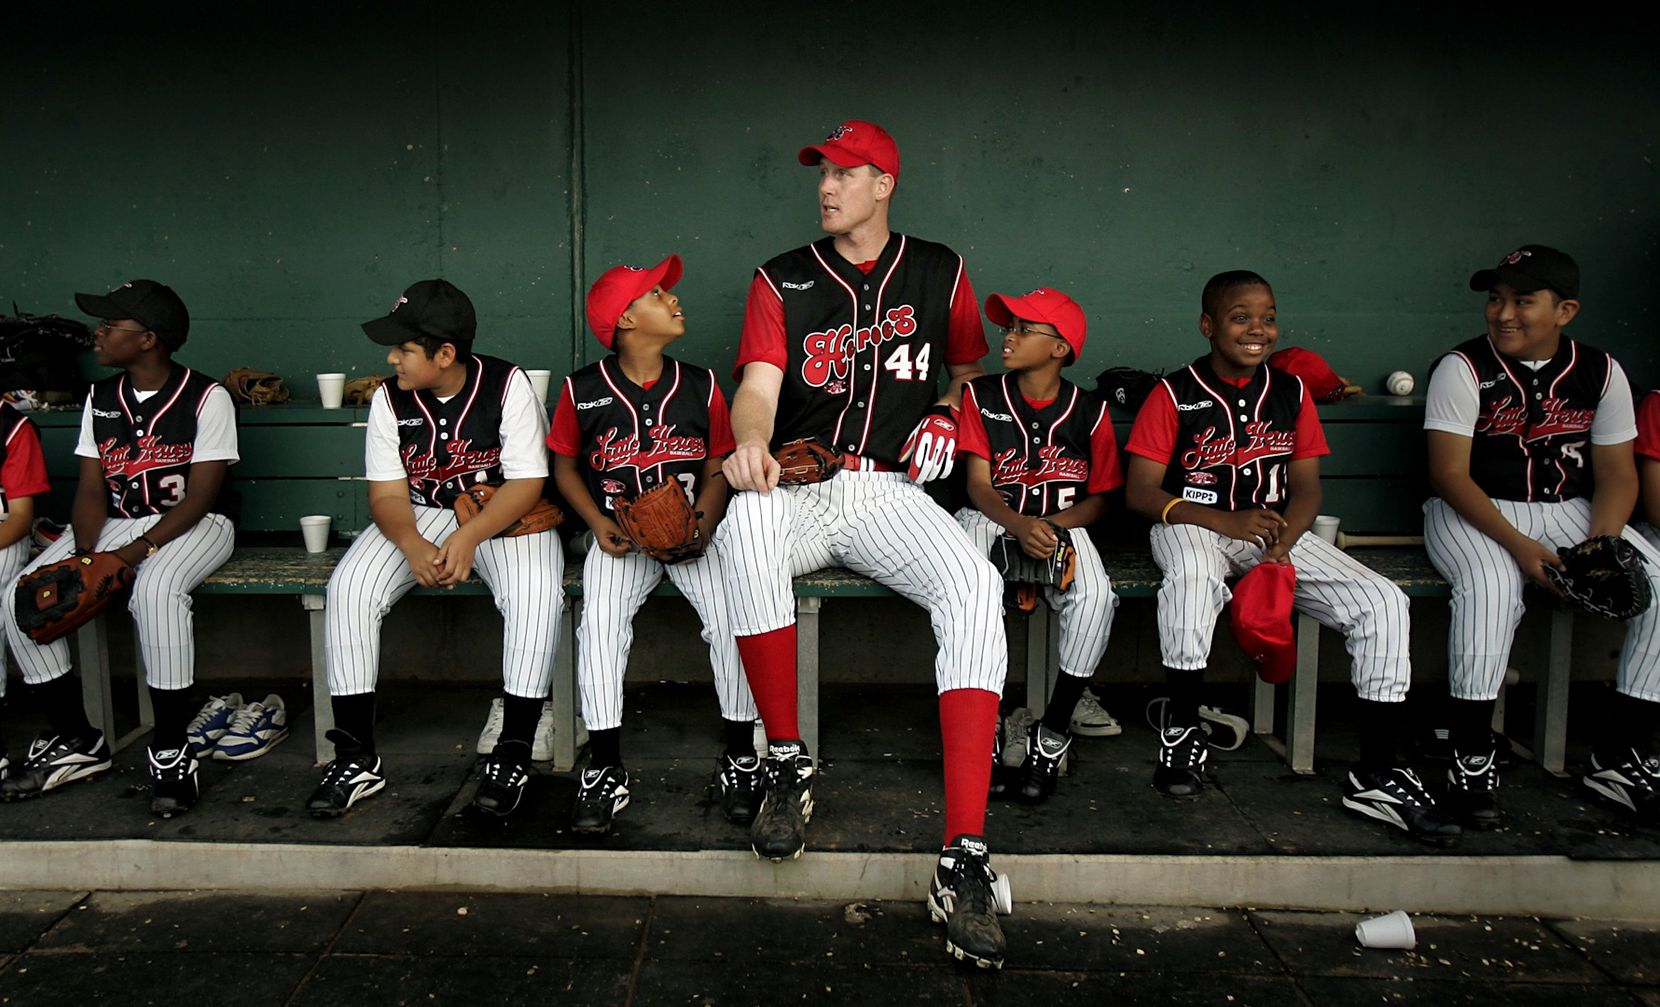 Dallas Mavericks center Shawn Bradley relaxes in the dugout with a group of young baseball players from the KIPP TRUTH Academy before the 2005 Reebok Heroes Celebrity Baseball Game at Dr. Pepper/Seven Up Ballpark in Frisco, Saturday, July 16, 2005. The charity game, featuring local sports stars and national celebrities benefited the children's charities of the Mike Modano Foundation, the Todd Wagner Foundation and the Little Heroes Baseball Field Foundation.